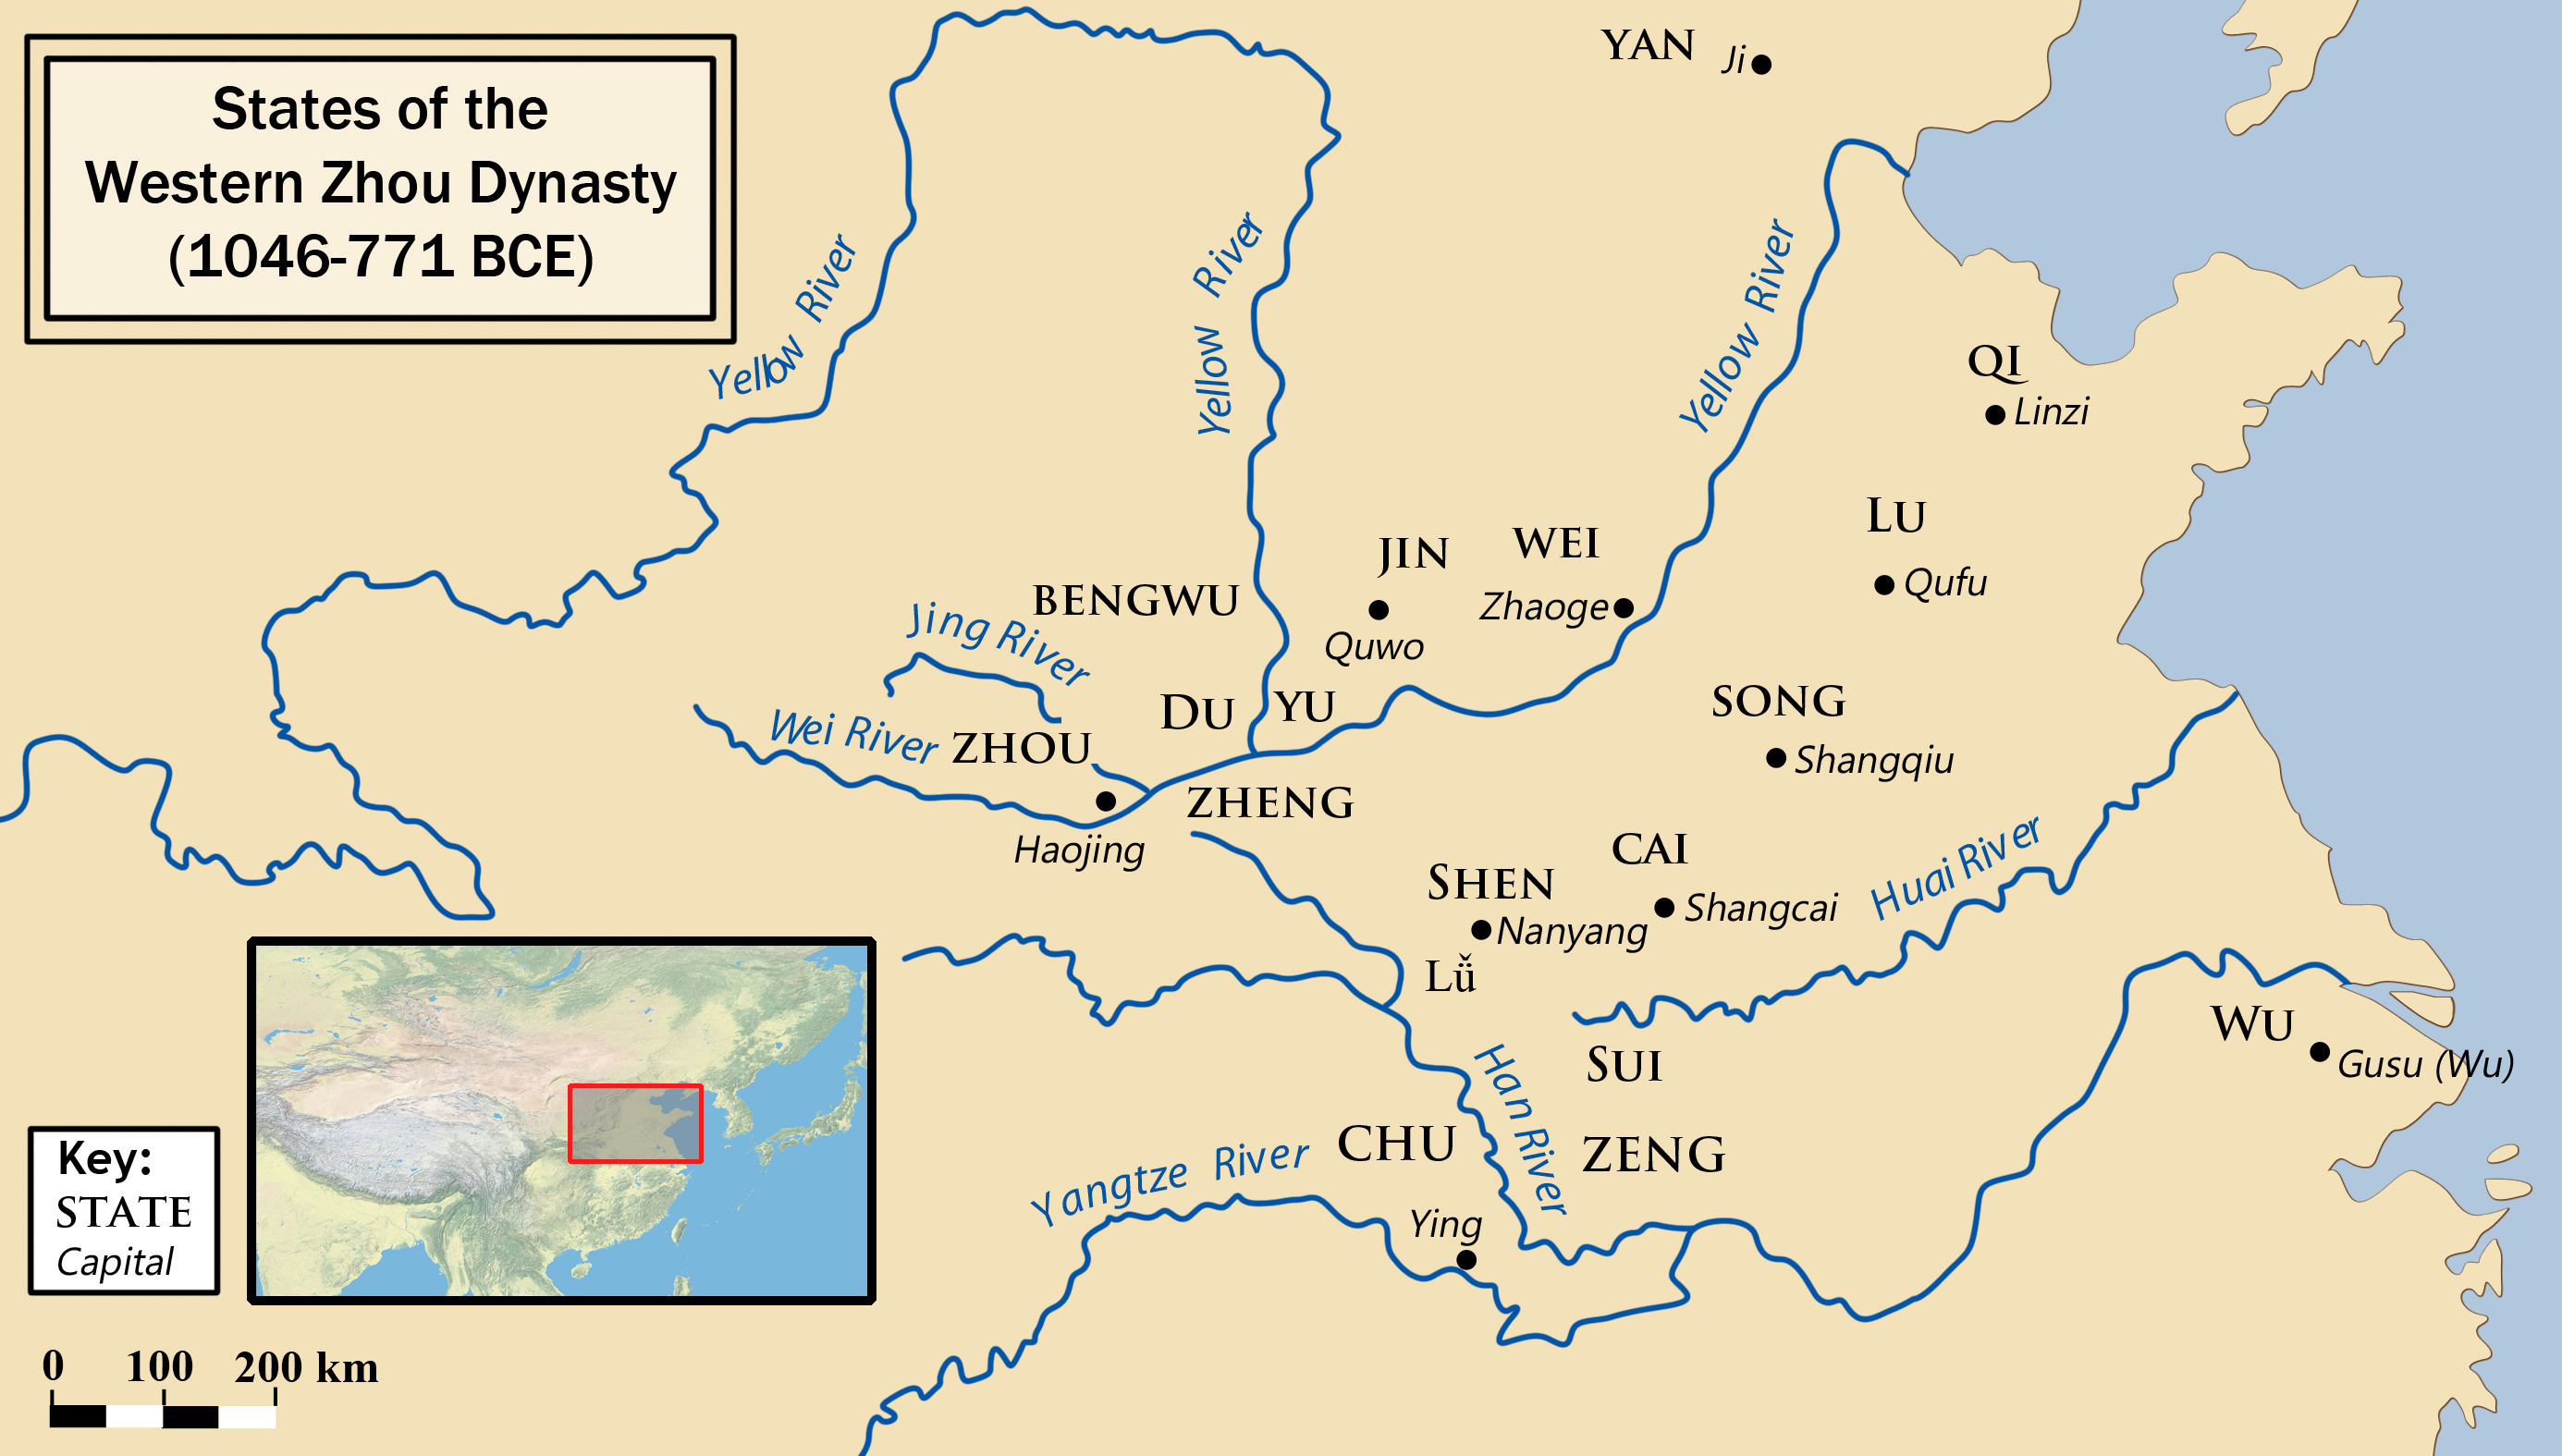 The states during the Western Zhou period (1056-771 BCE) in China. Shows the Yellow River and Yangtze River.